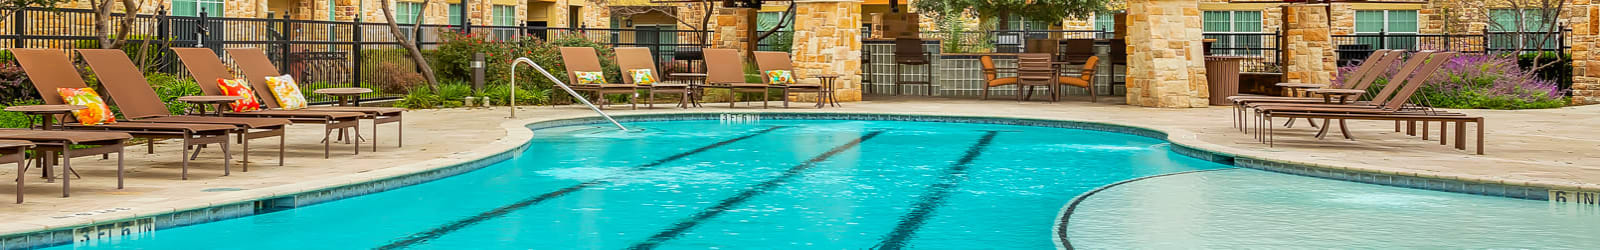 Apply now at Villas in Westover Hills in San Antonio, Texas